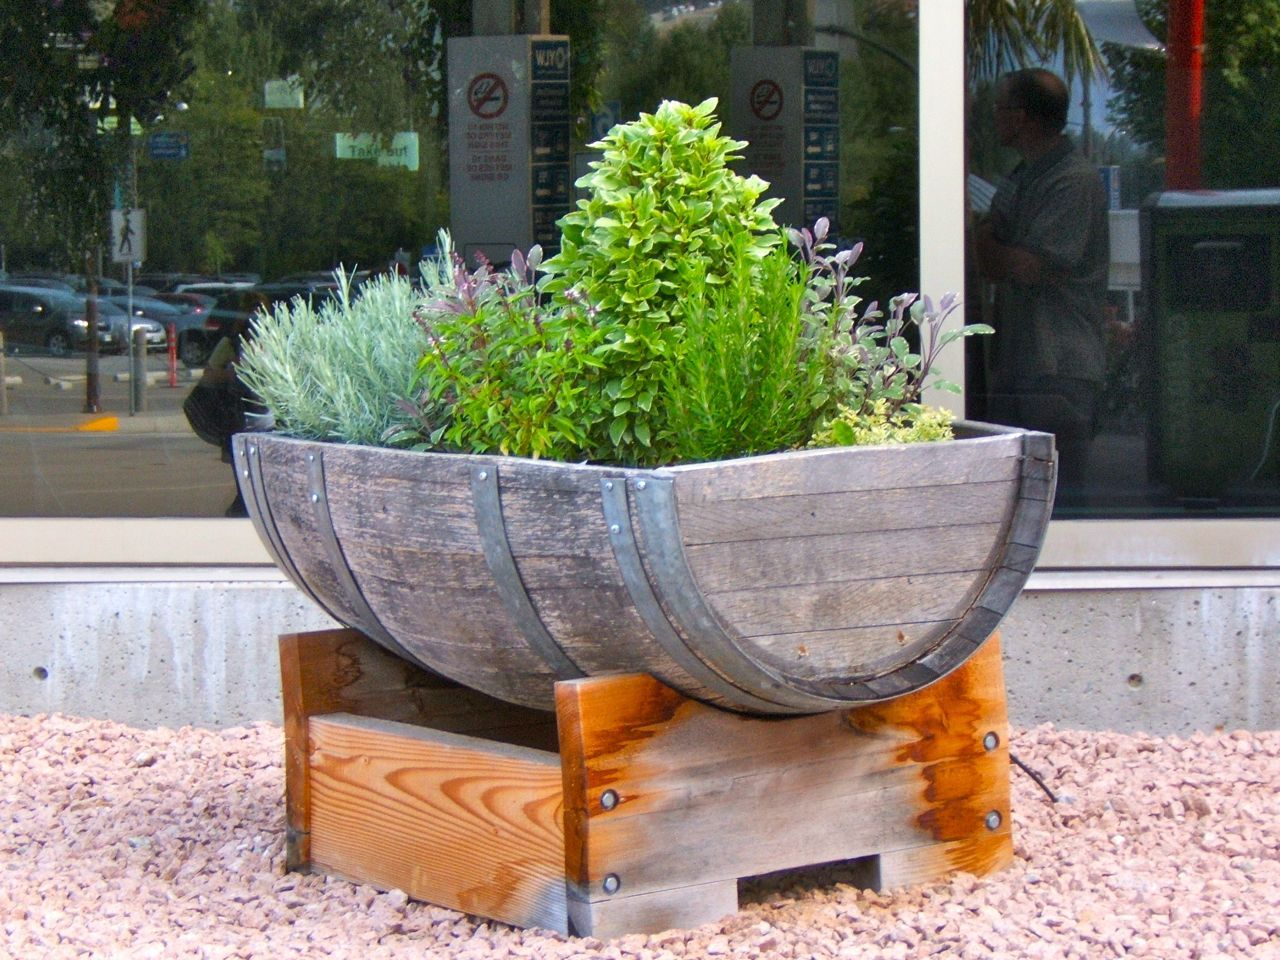 The 1 Pot Herb Garden is part of Large garden Patio - If you don't have a large garden, grow your herbs in pots  Use large pots and grow like minded herbs together to save even more space  Potted herbs are great for small spaces